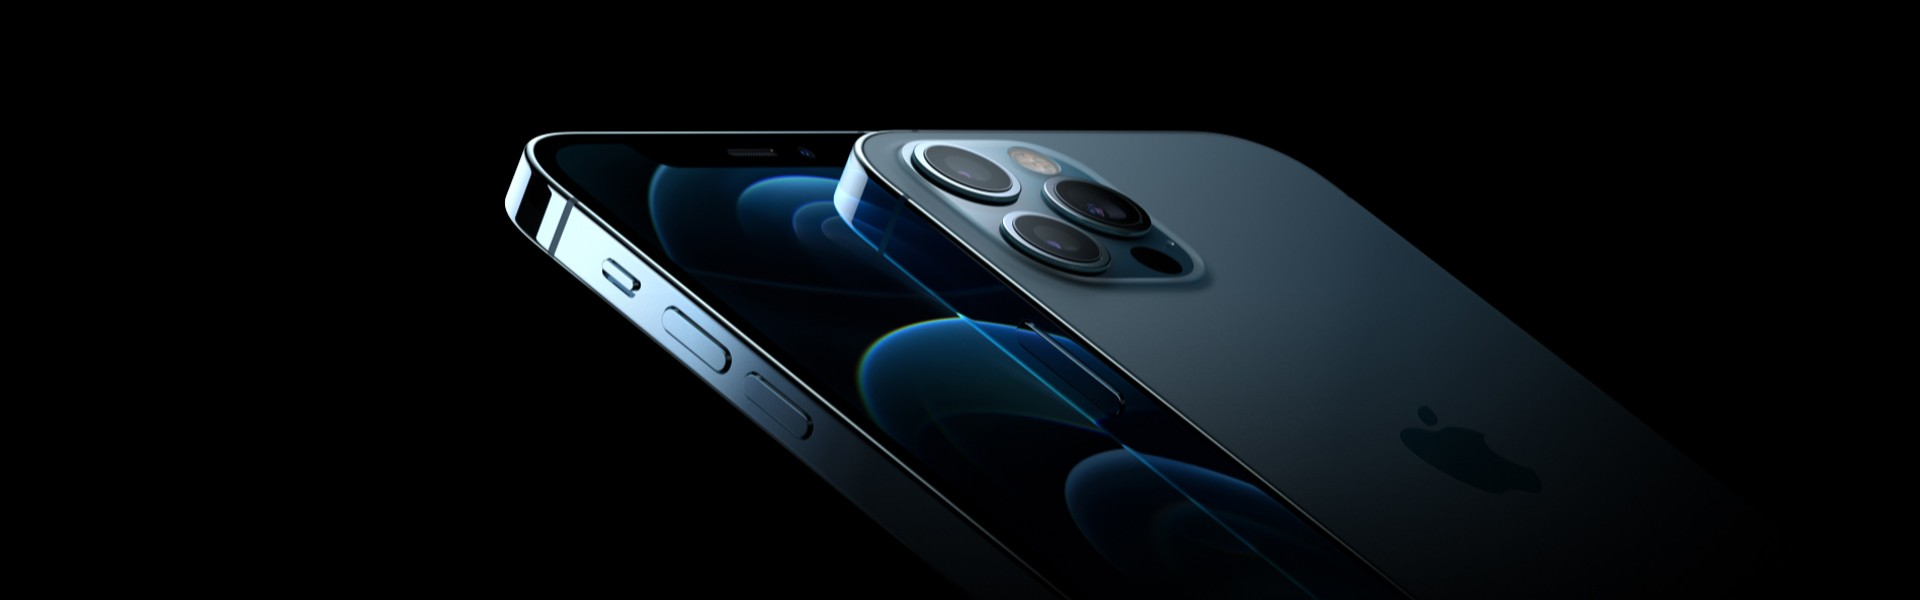 Iphone 12 banner image